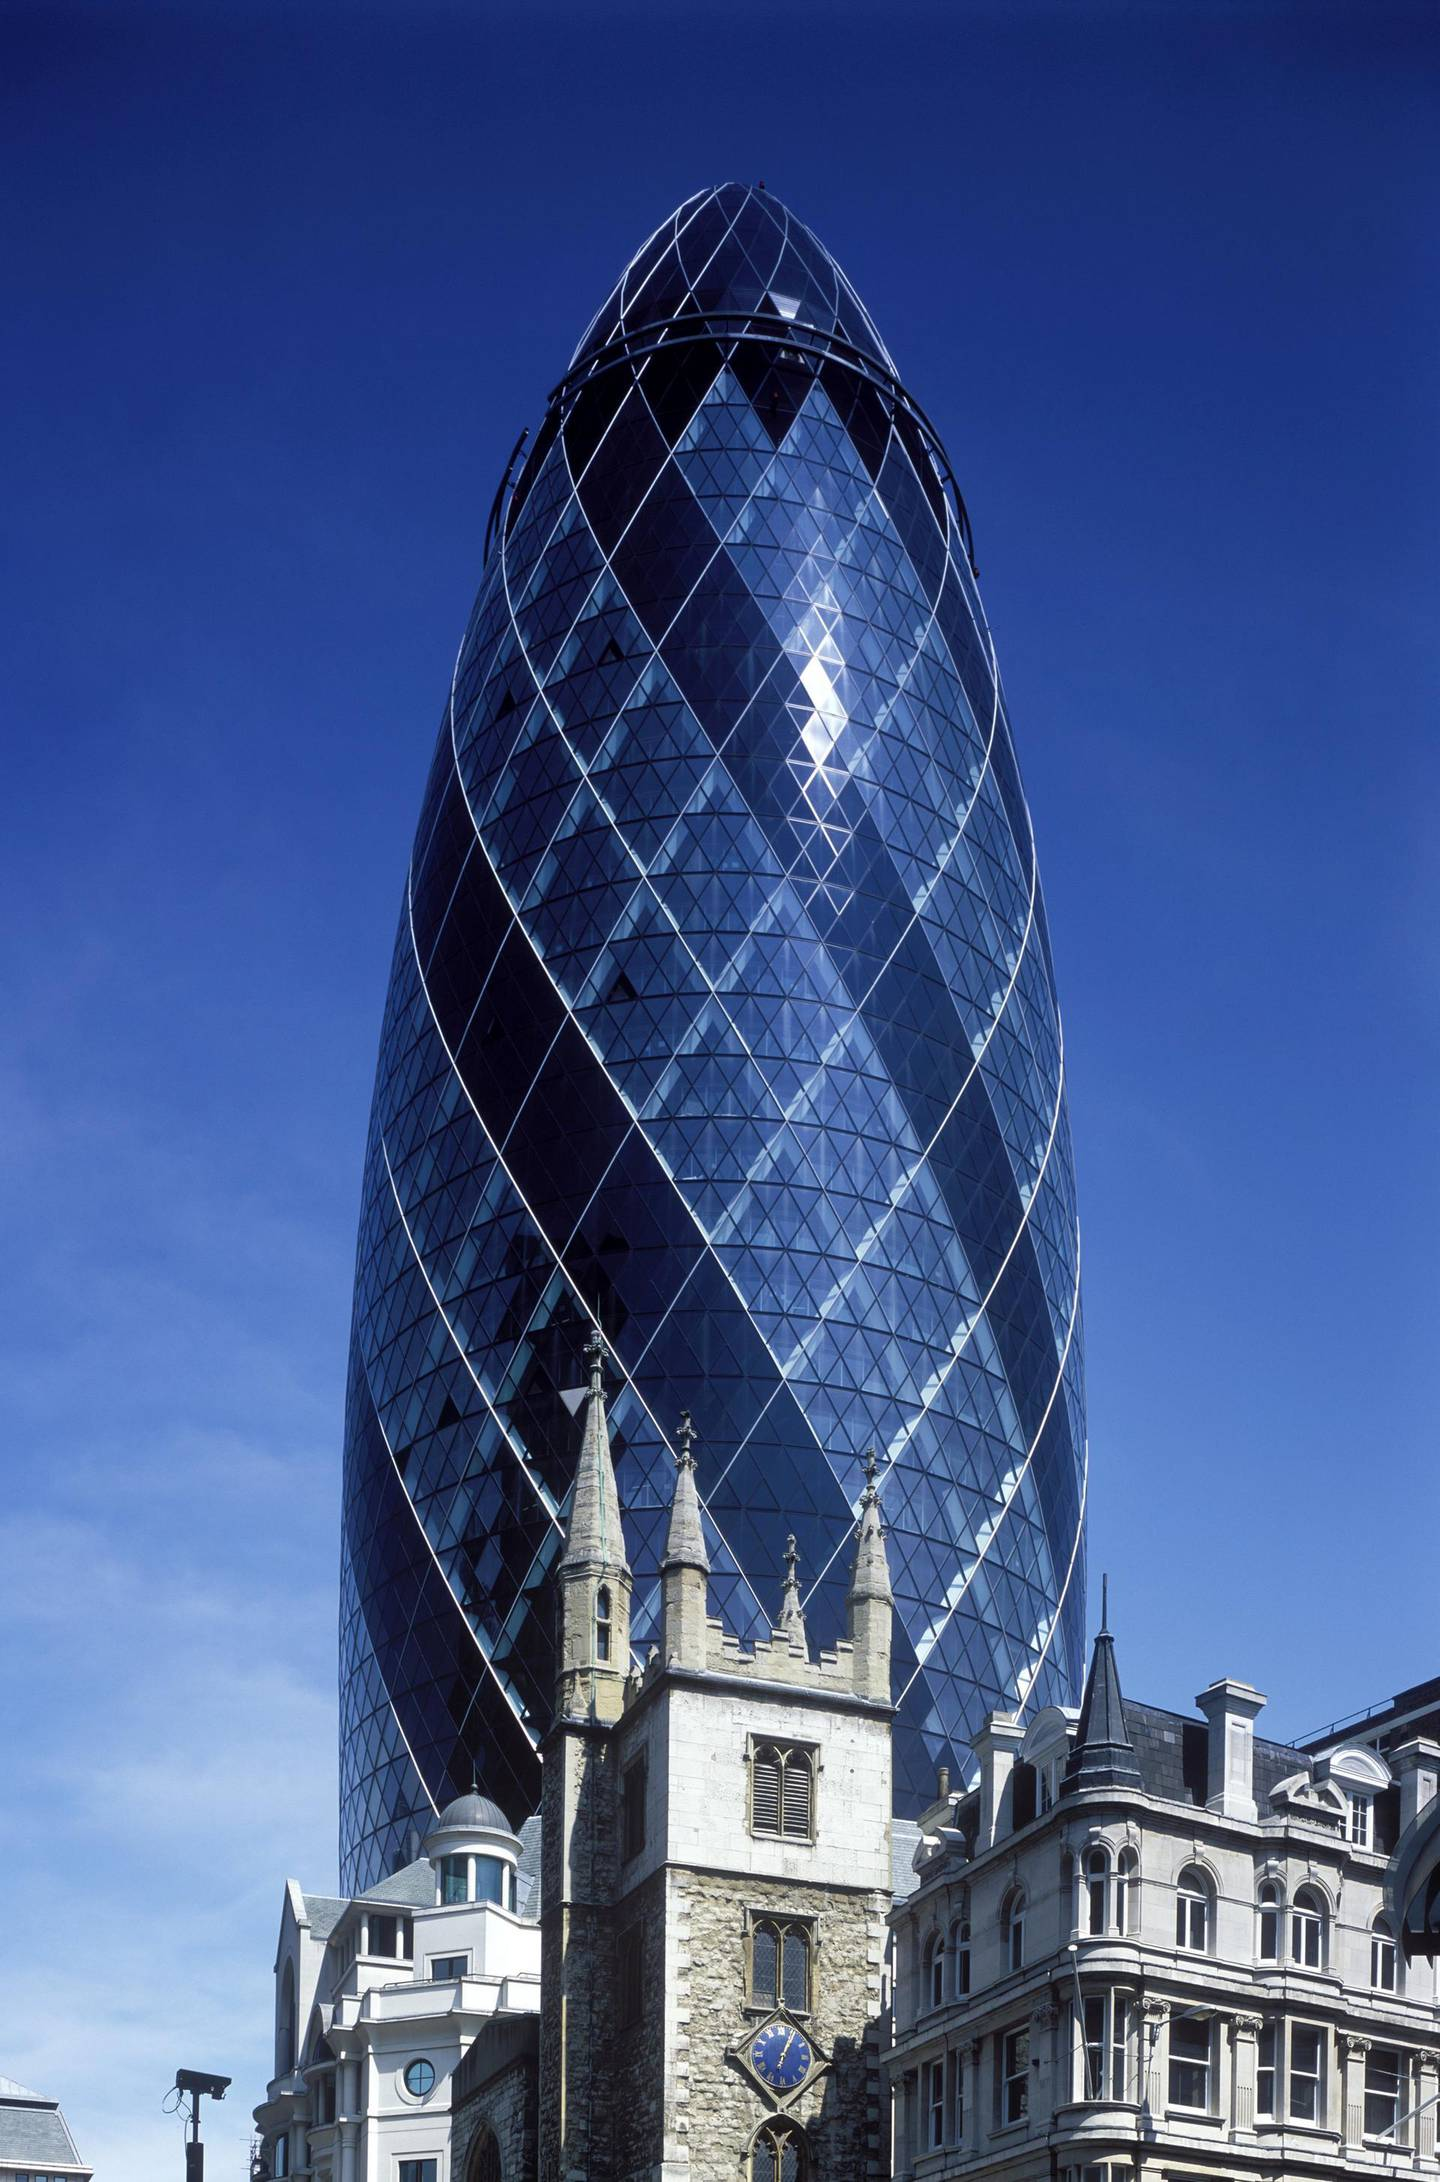 Swiss R.E. building, the Gherkin, London,  England. (Photo by: Dukas/Universal Images Group via Getty Images)